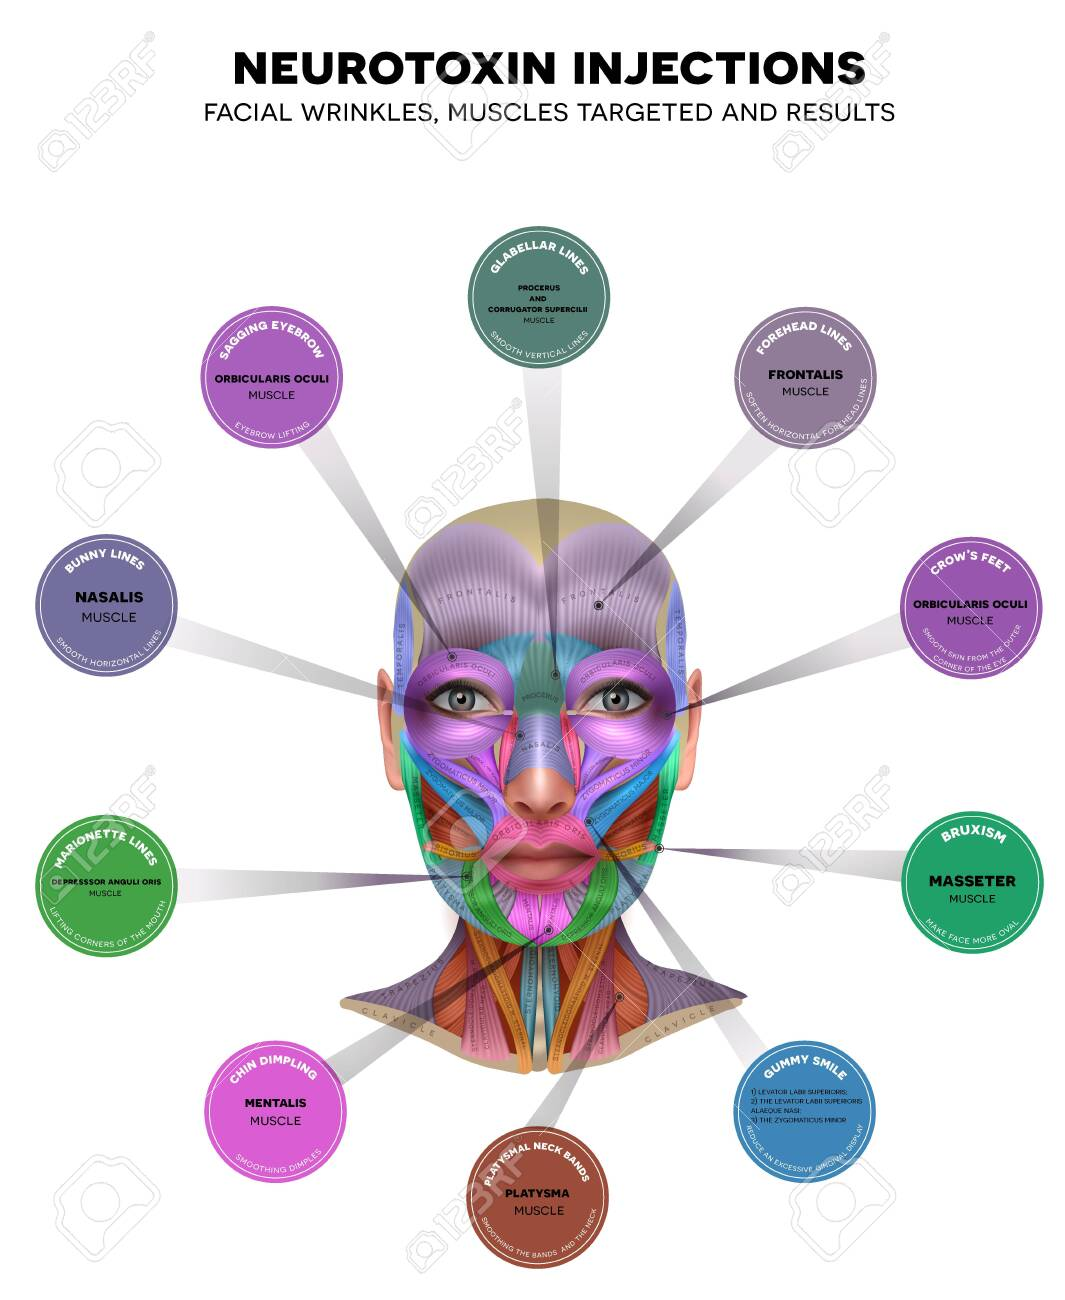 Injections for facial wrinkles. Common types of facial wrinkles. Neurotoxin injections treatment areas, muscles targeted and results. - 139945293